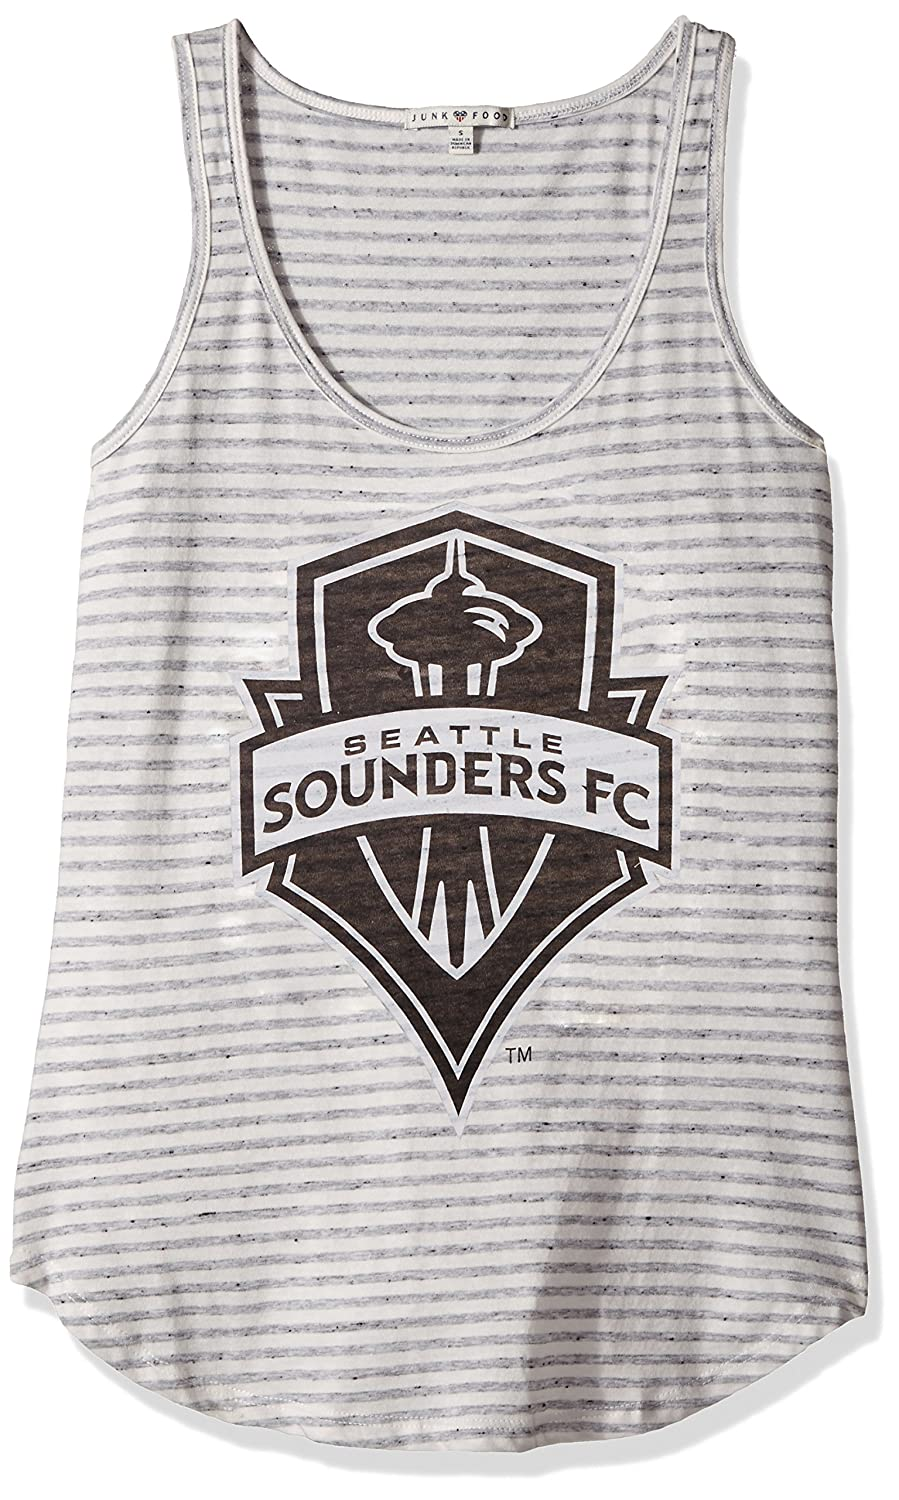 ジャンクフードレディースタンク B072MT4LJ1 XX-Large|Sun/Grey|Seattle Sounders FC Sun/Grey XX-Large